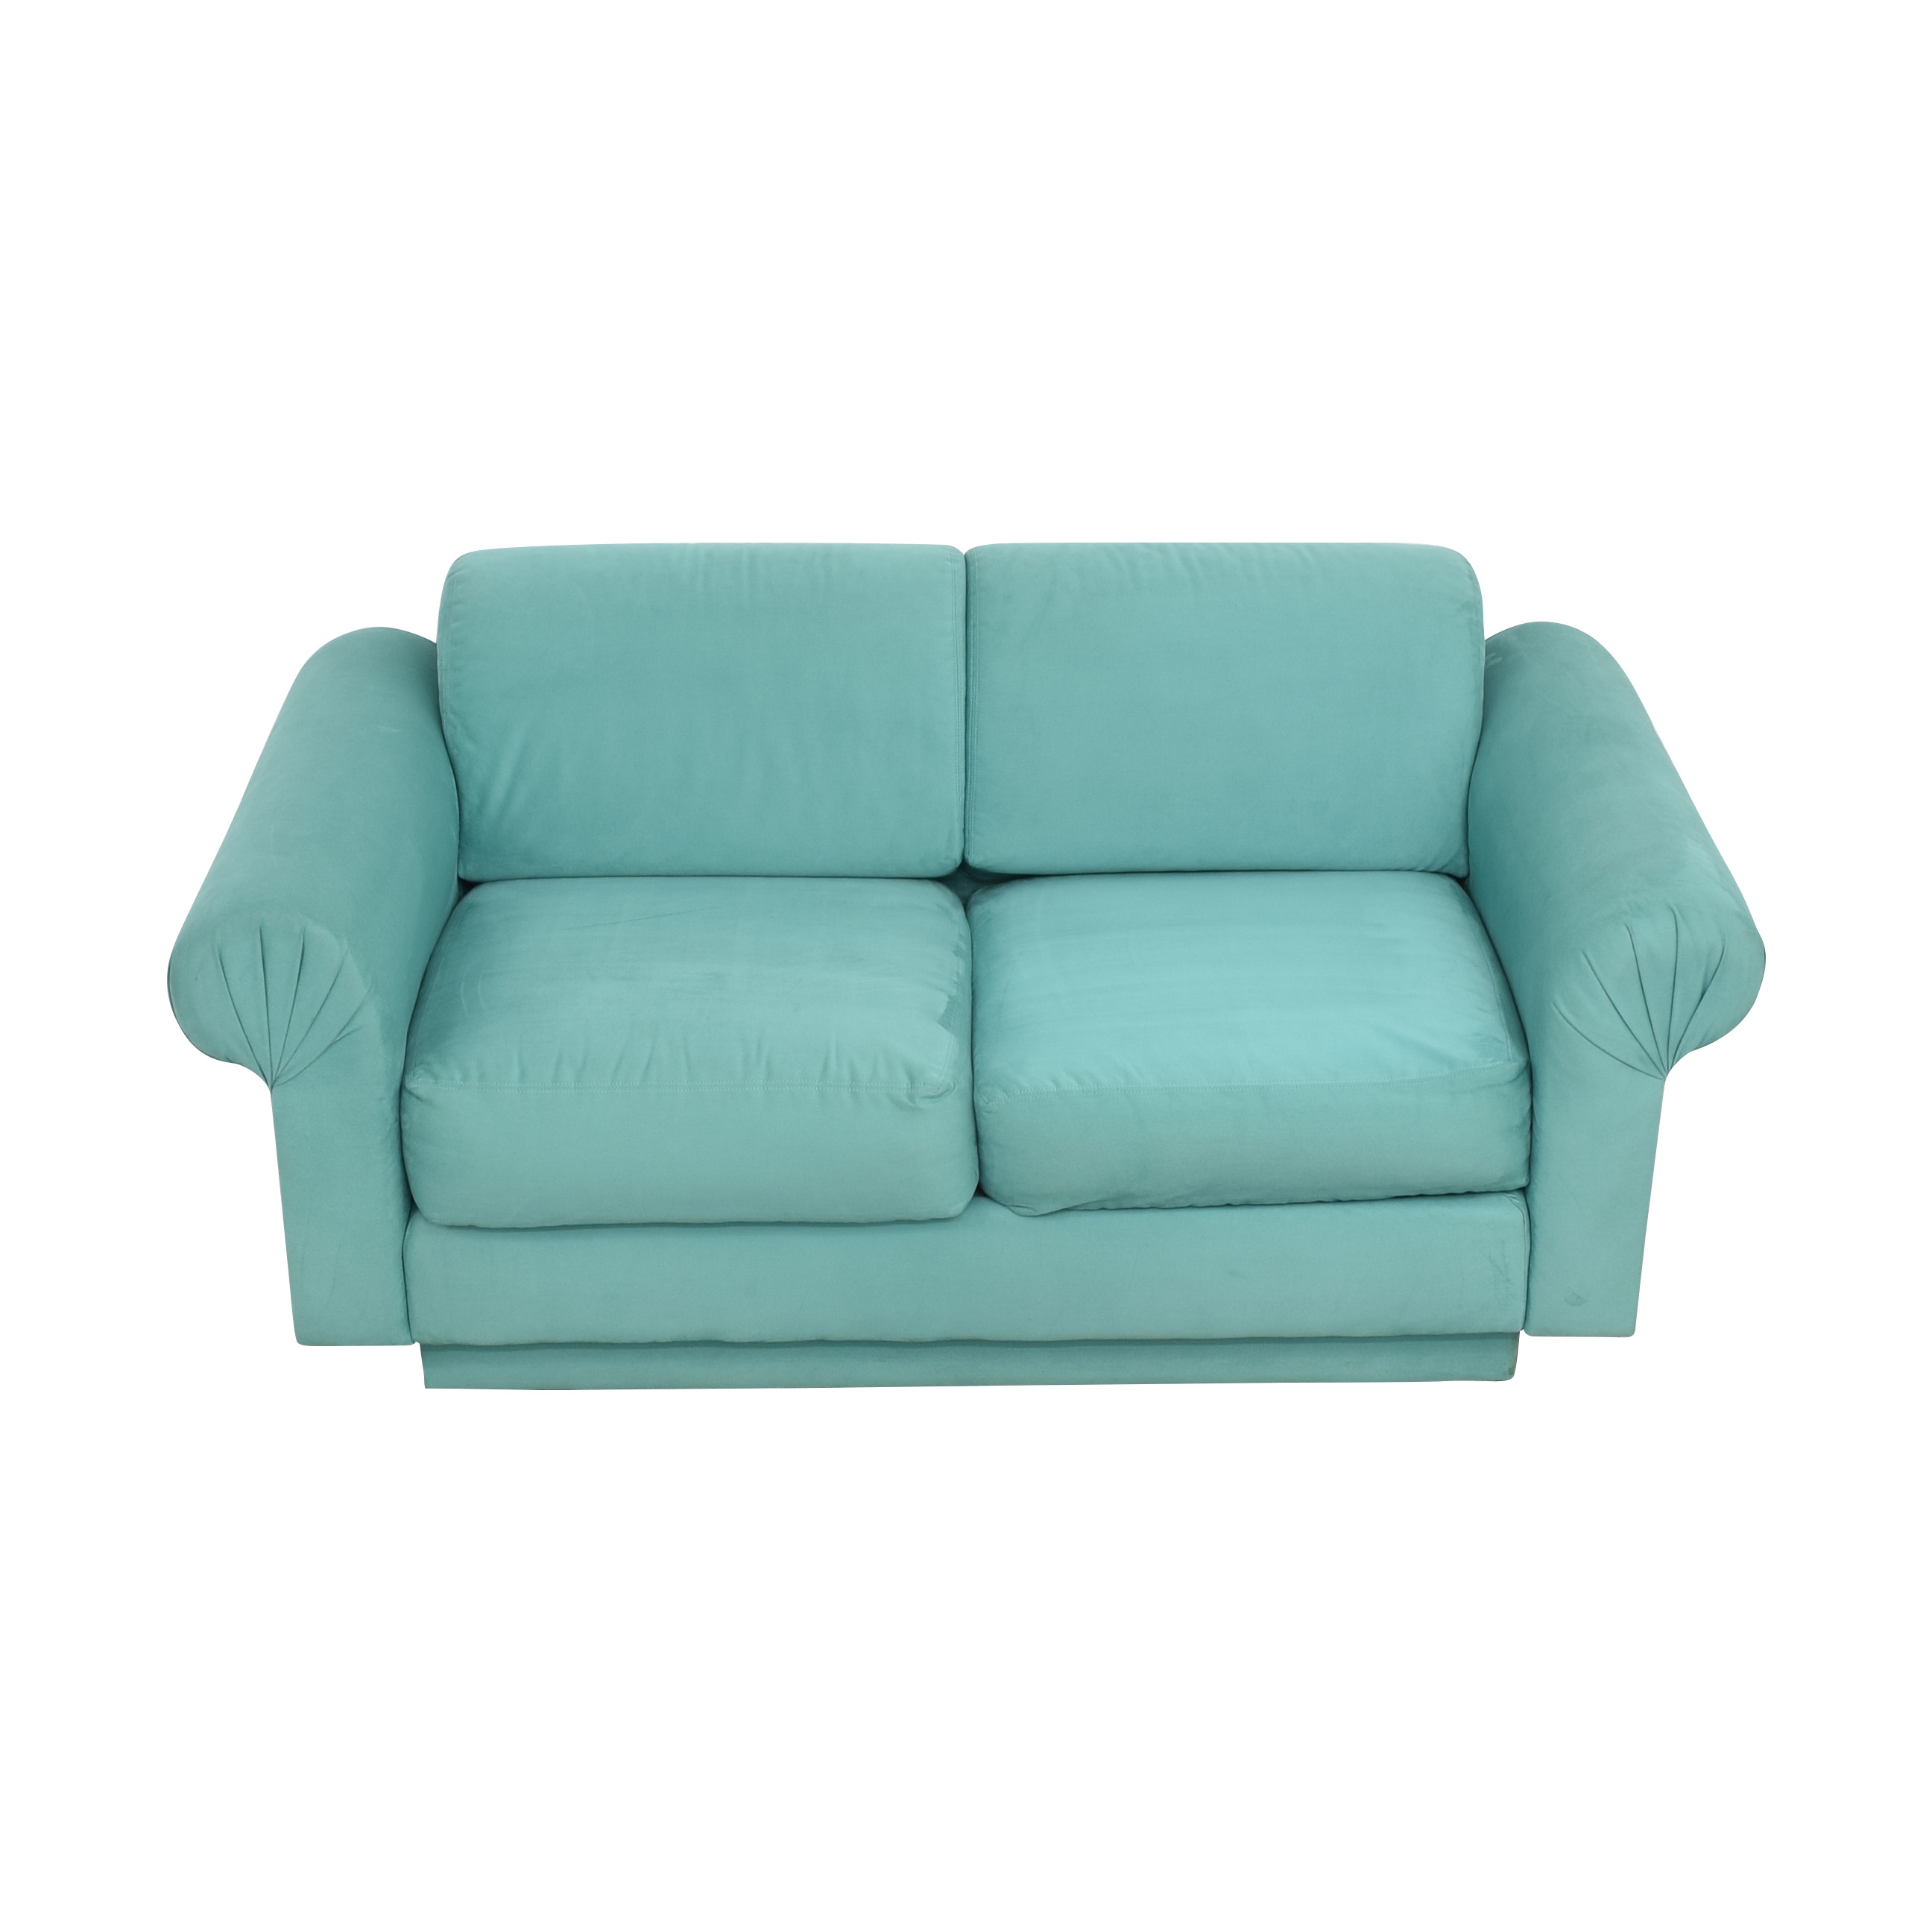 buy Directional Furniture Directional Furniture Suede Sofa online